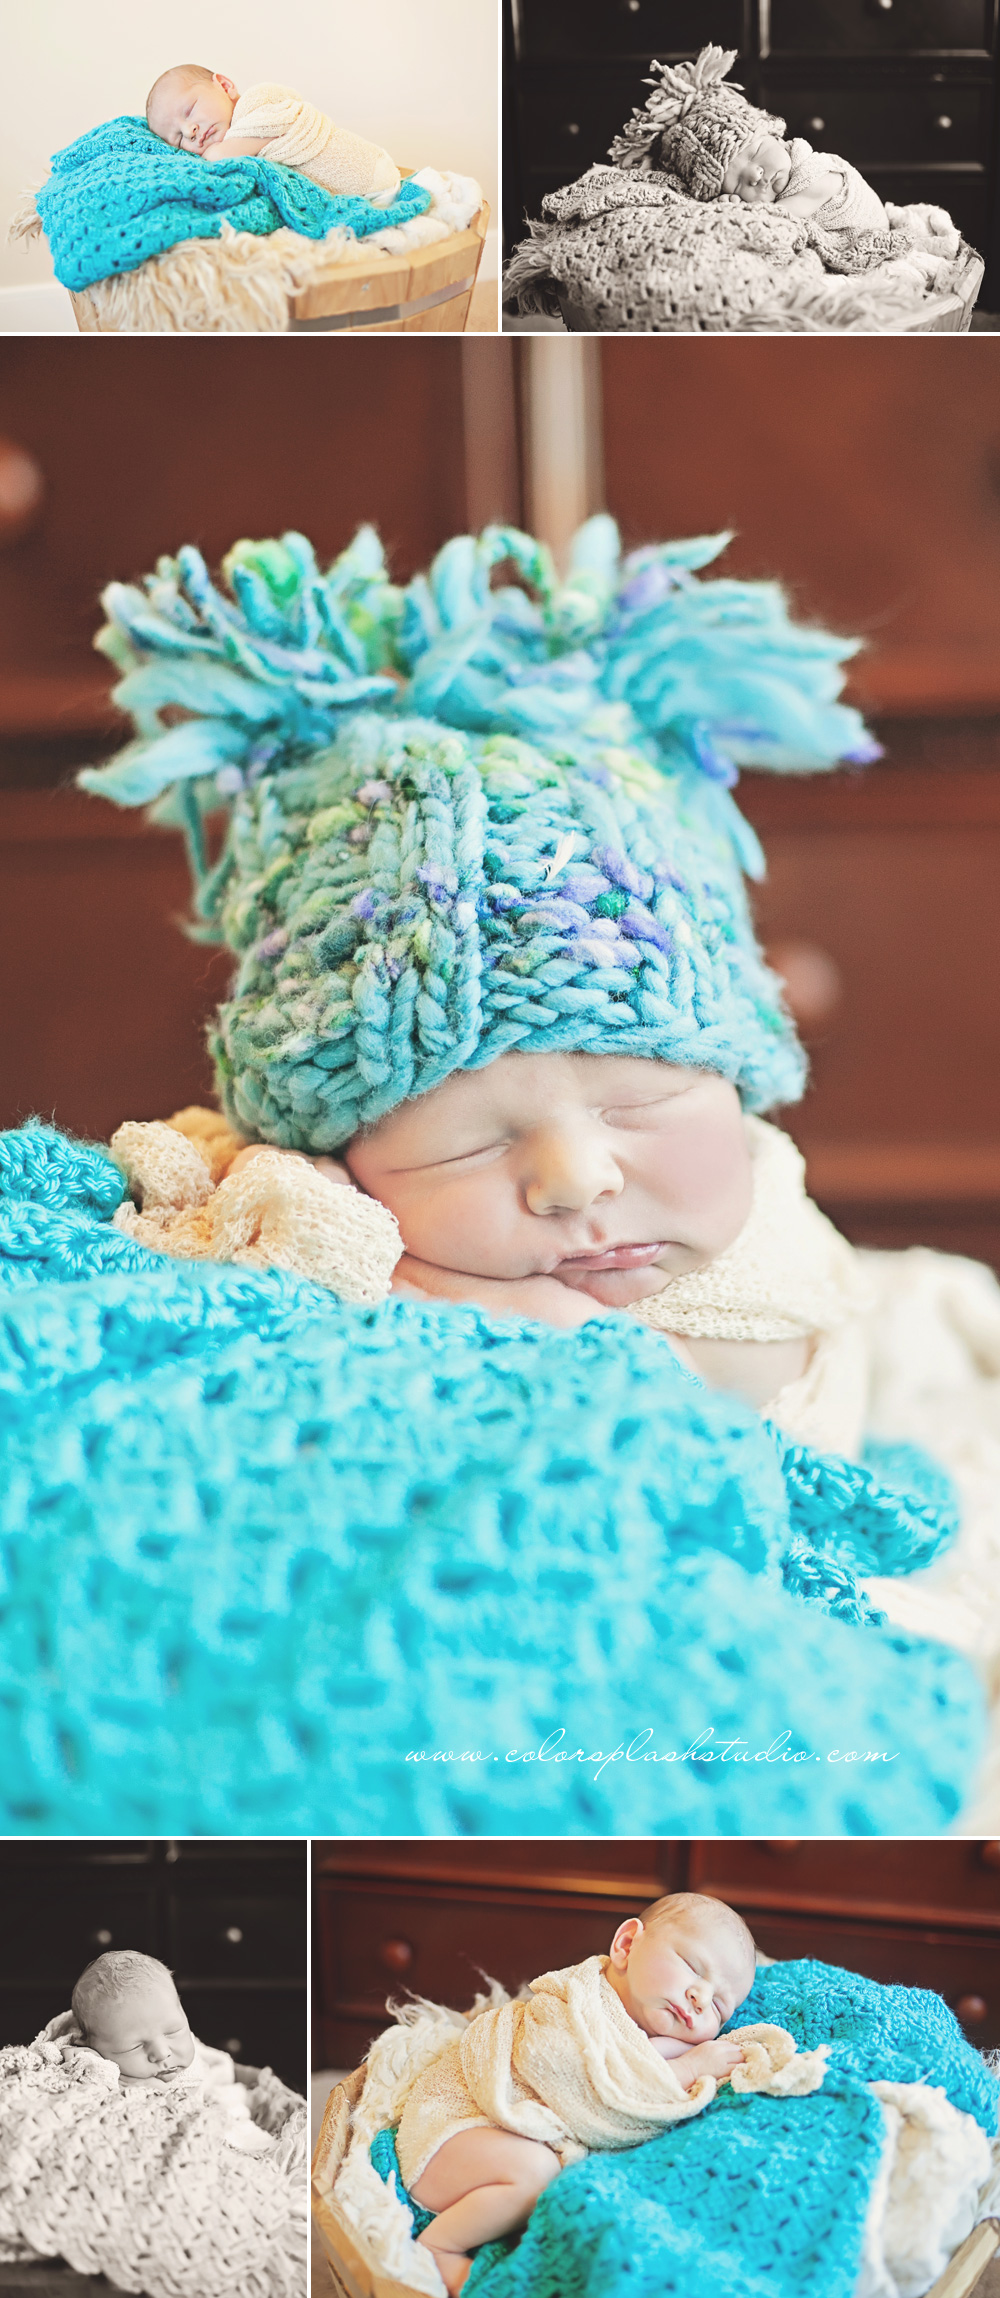 Kalamazoo Newborn Photography in Home